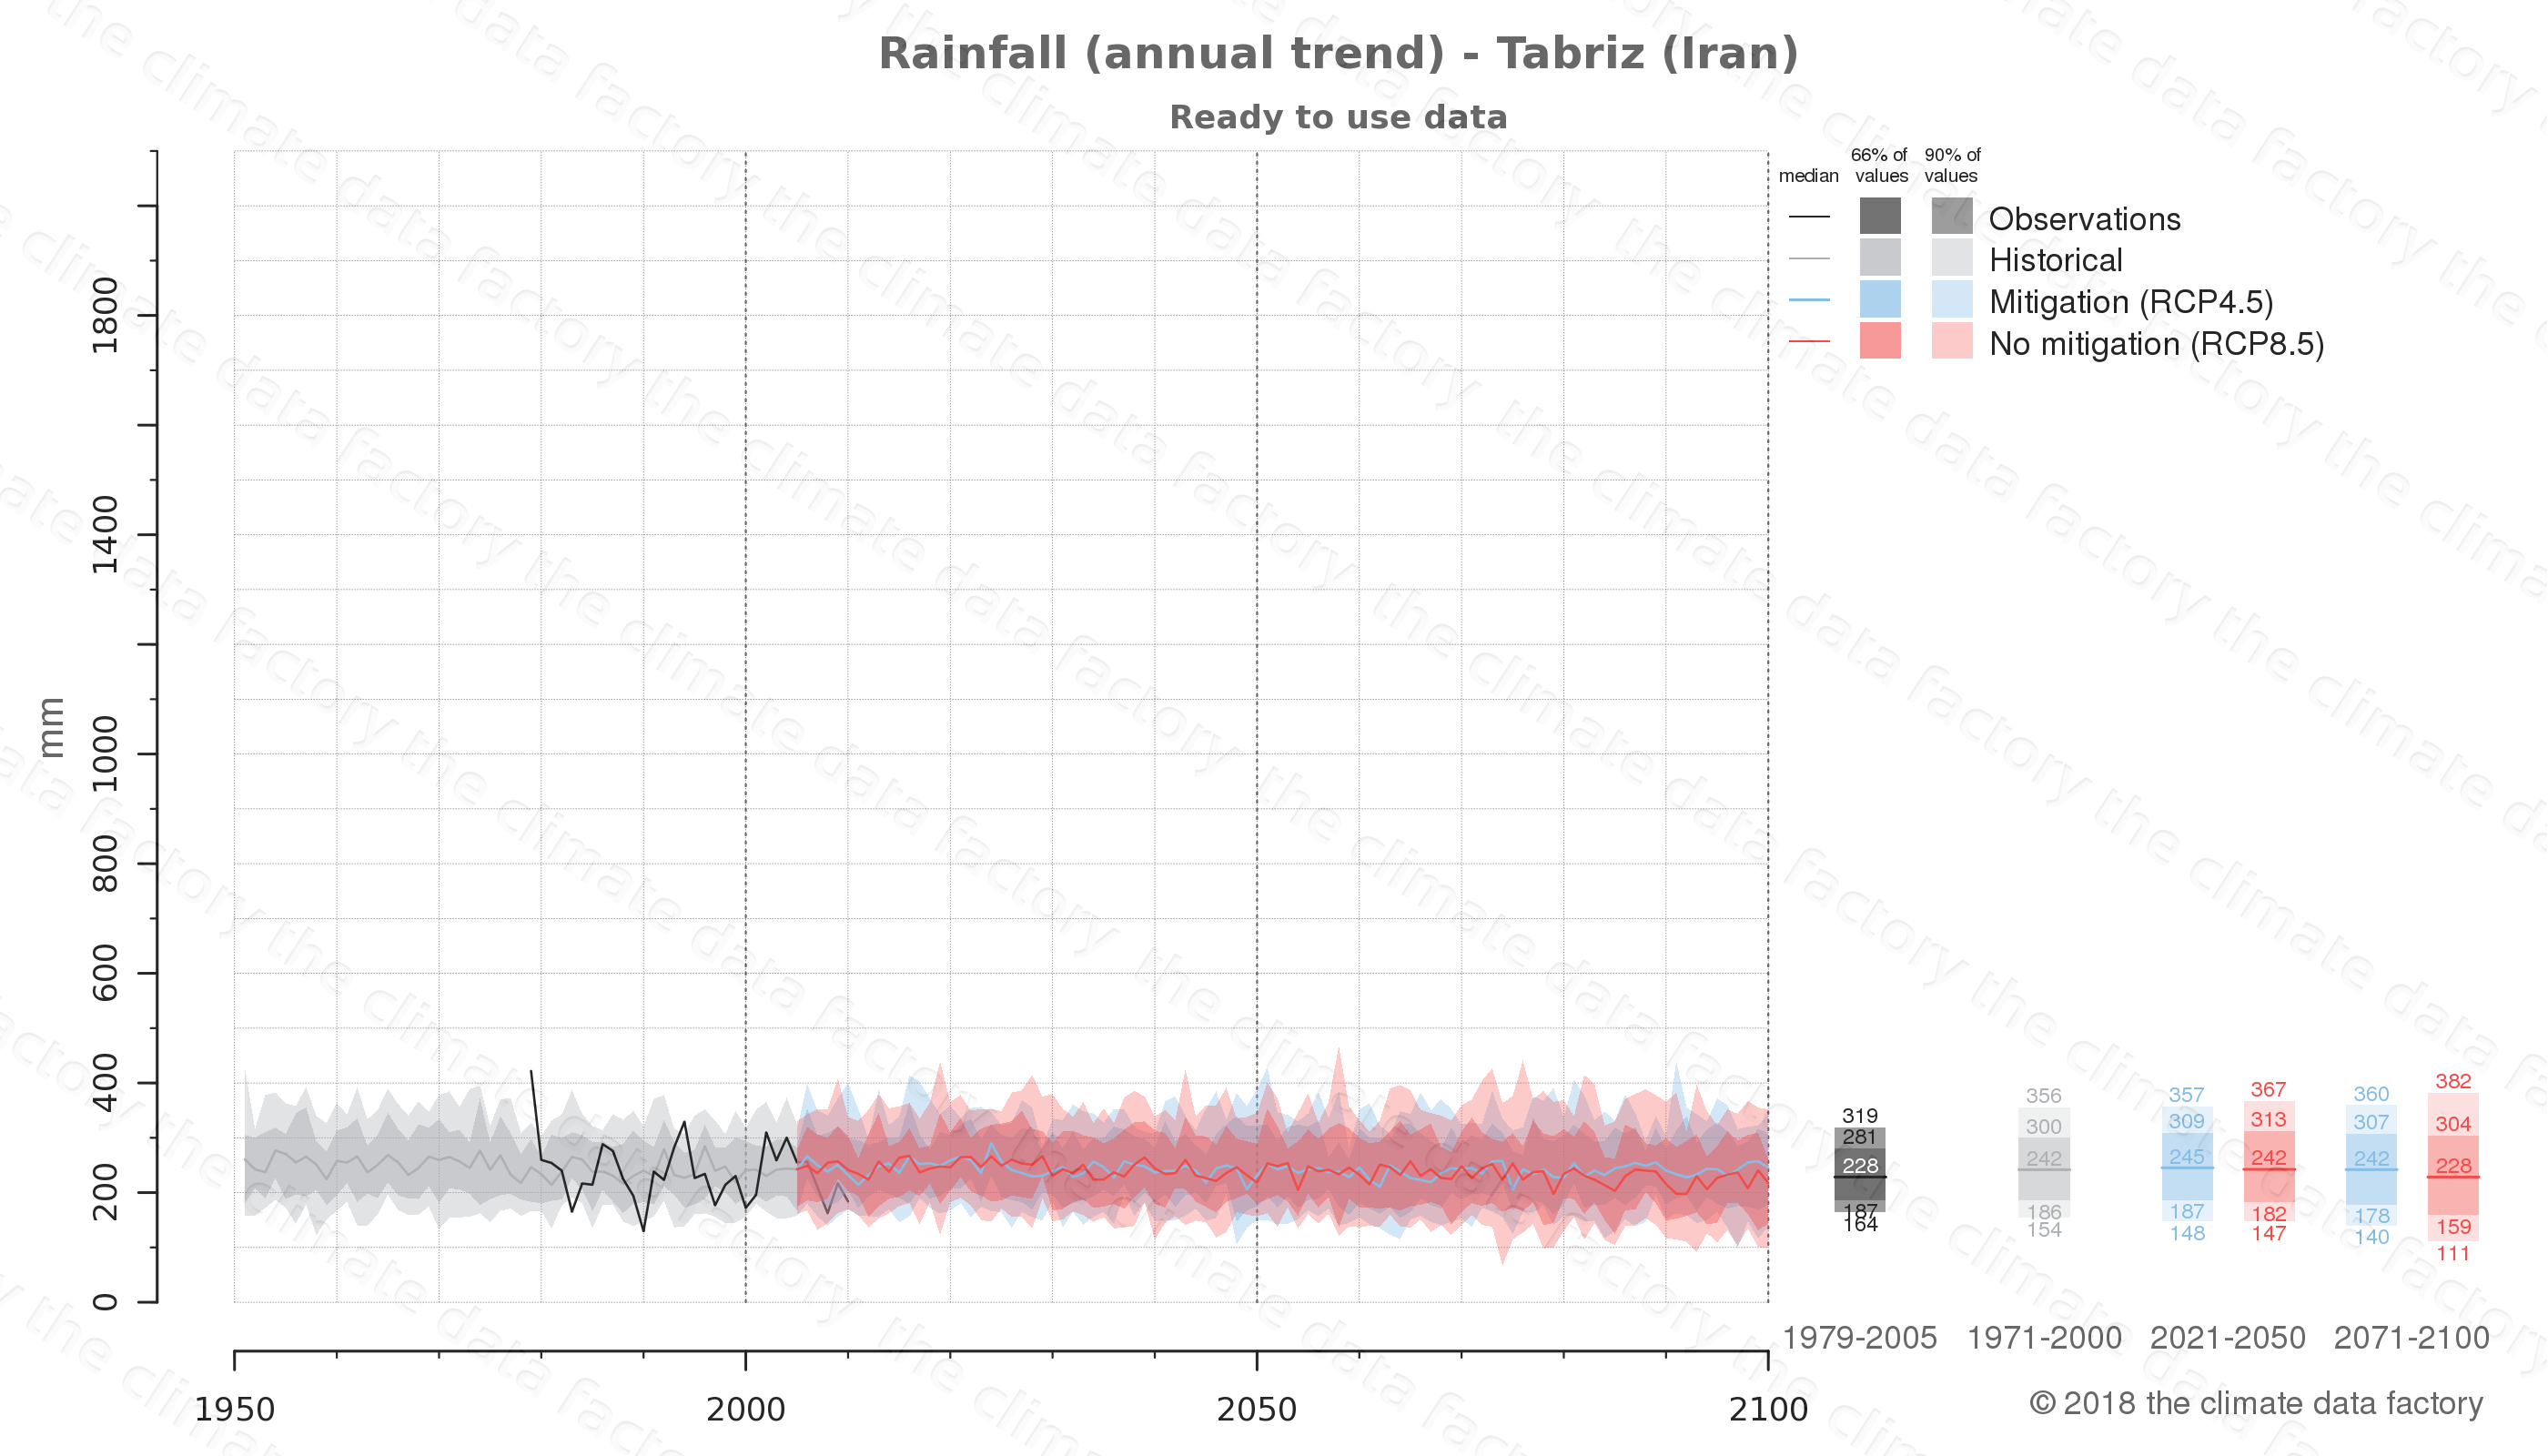 climate change data policy adaptation climate graph city data rainfall tabriz iran